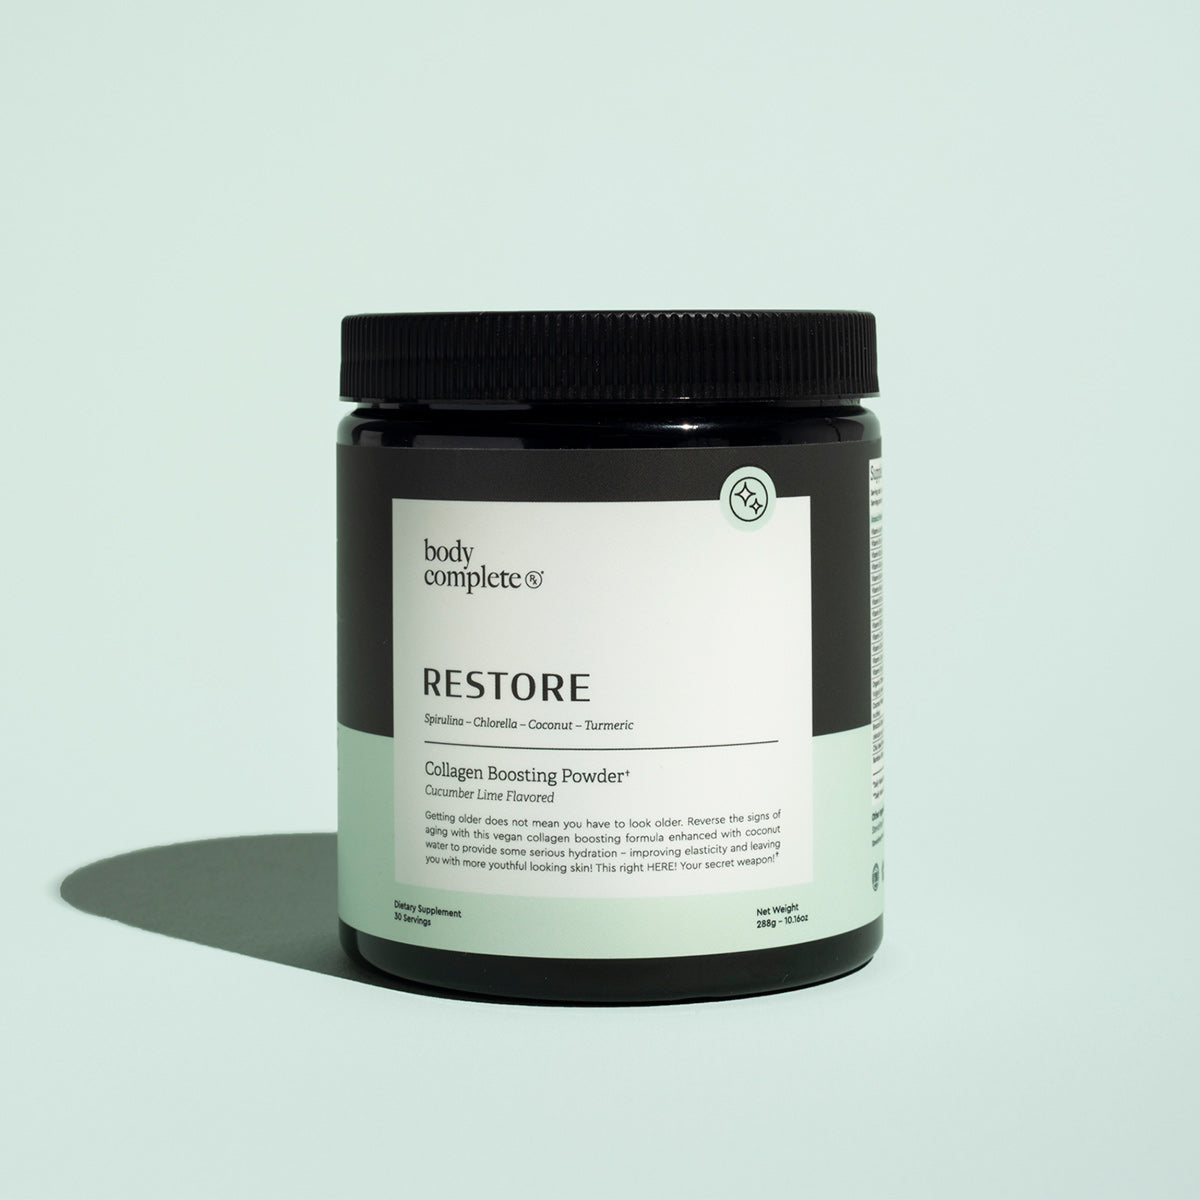 Image of Restore Collagen Boosting Powder